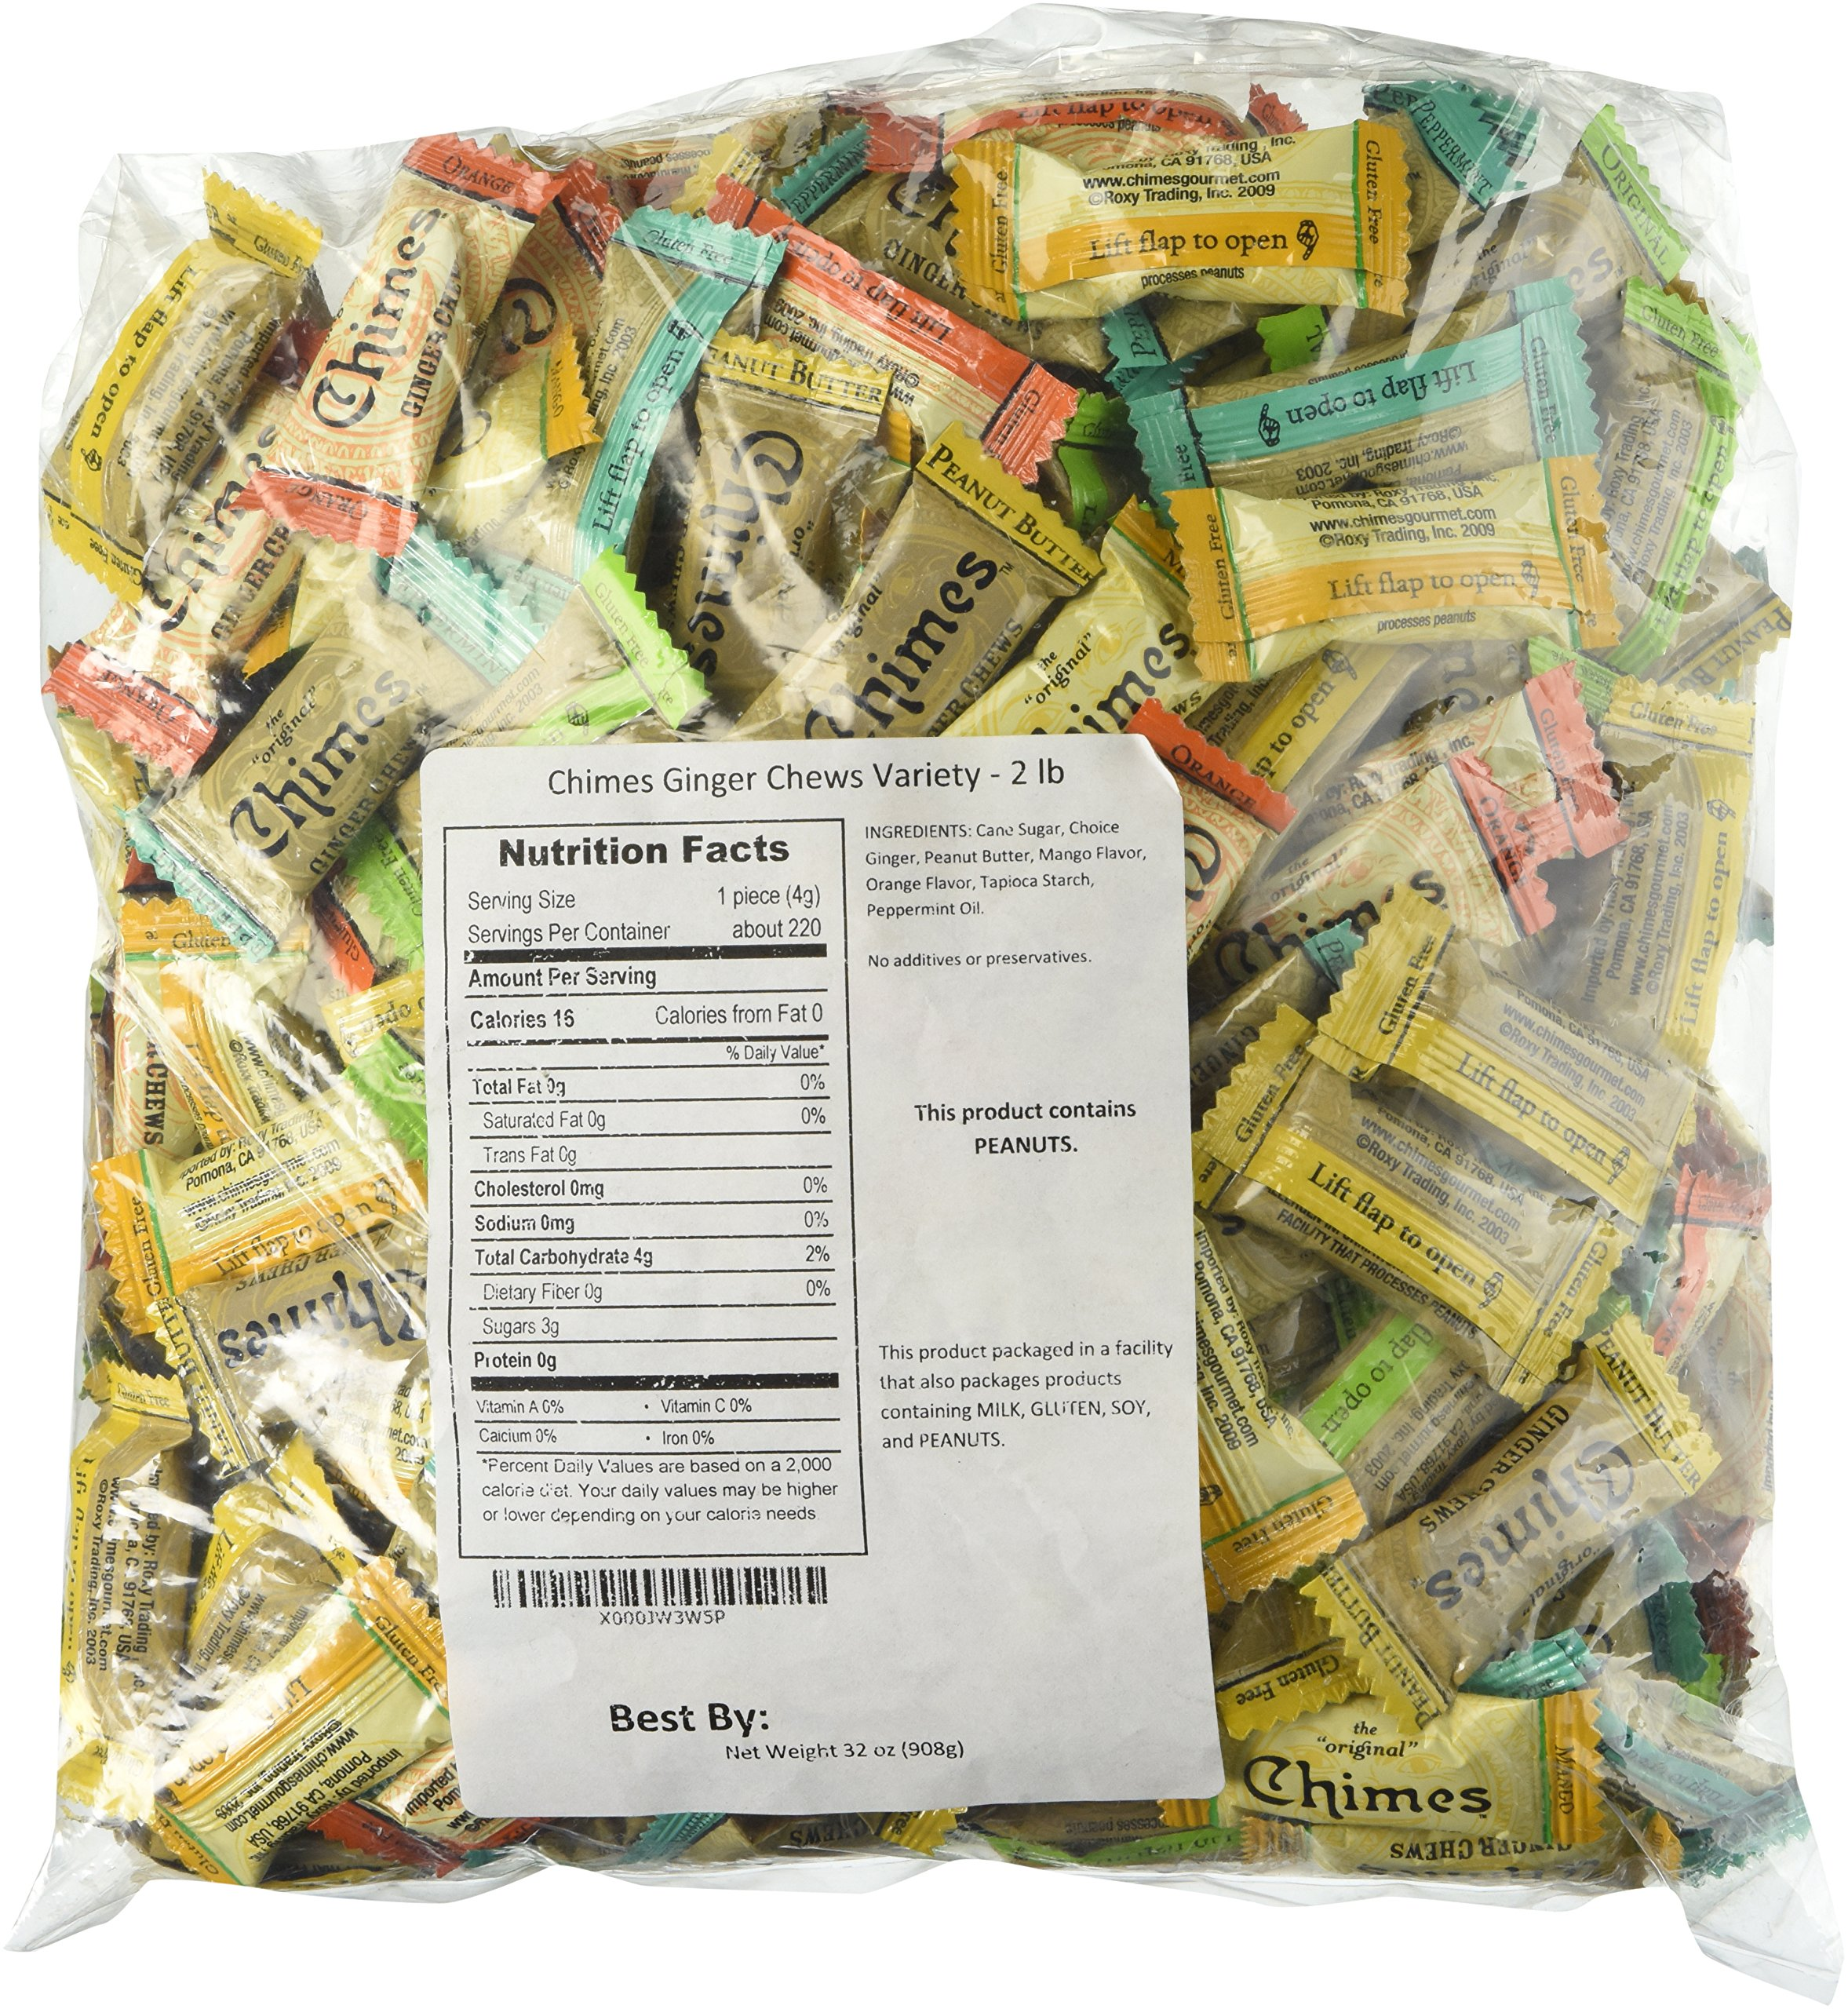 Chimes Ginger Chews Variety Pack - Original, Orange, Mango, Peppermint and Peanut Butter - 2lb Bag by Chimes (Image #1)